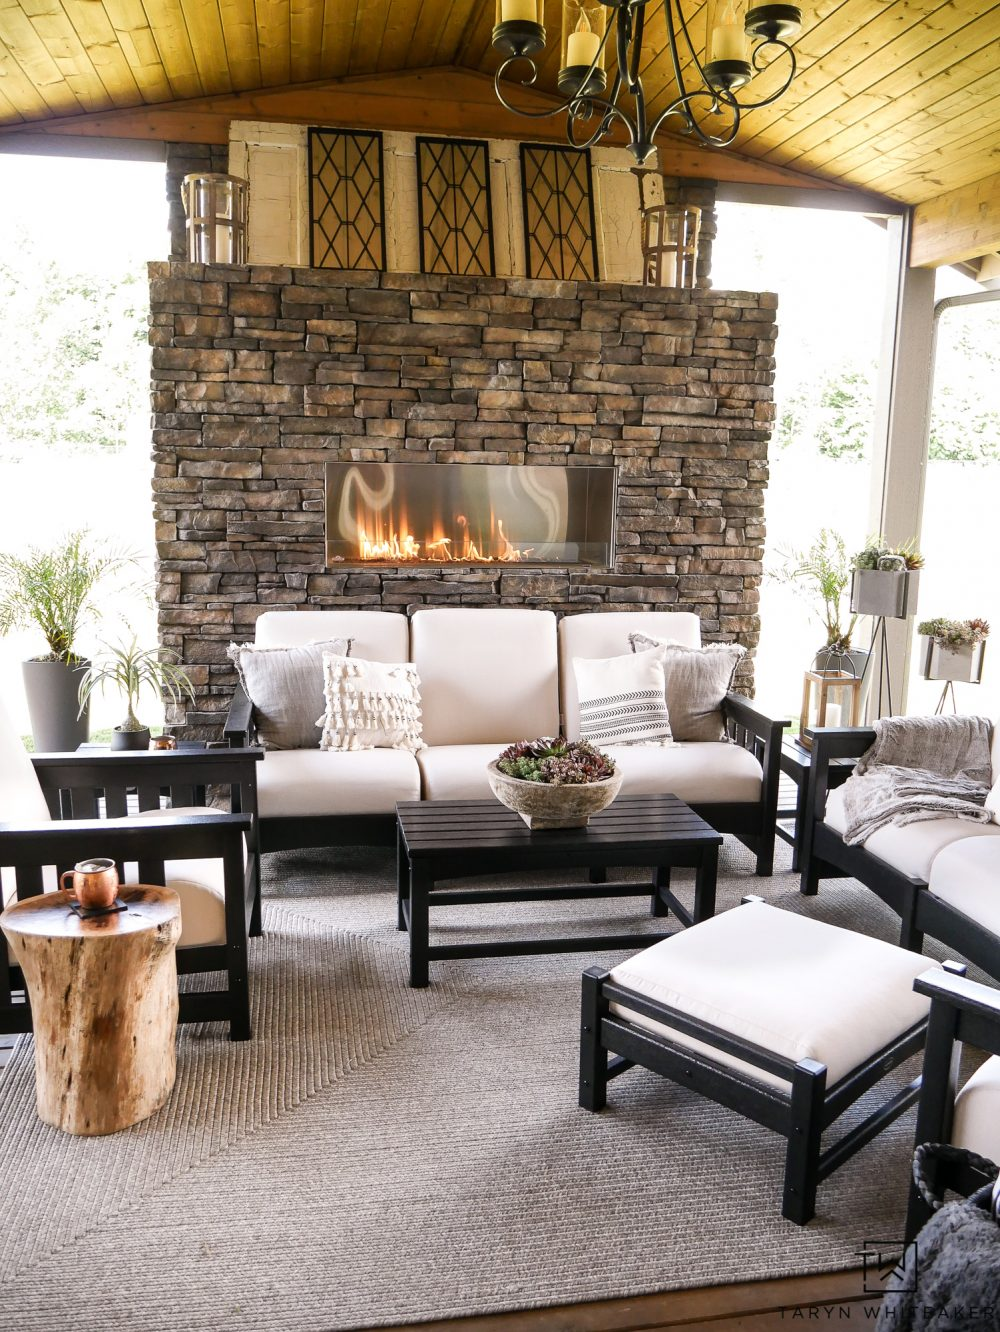 New Black and White Outdoor Patio Furniture With Stone ... on Black And White Backyard Decor  id=56697